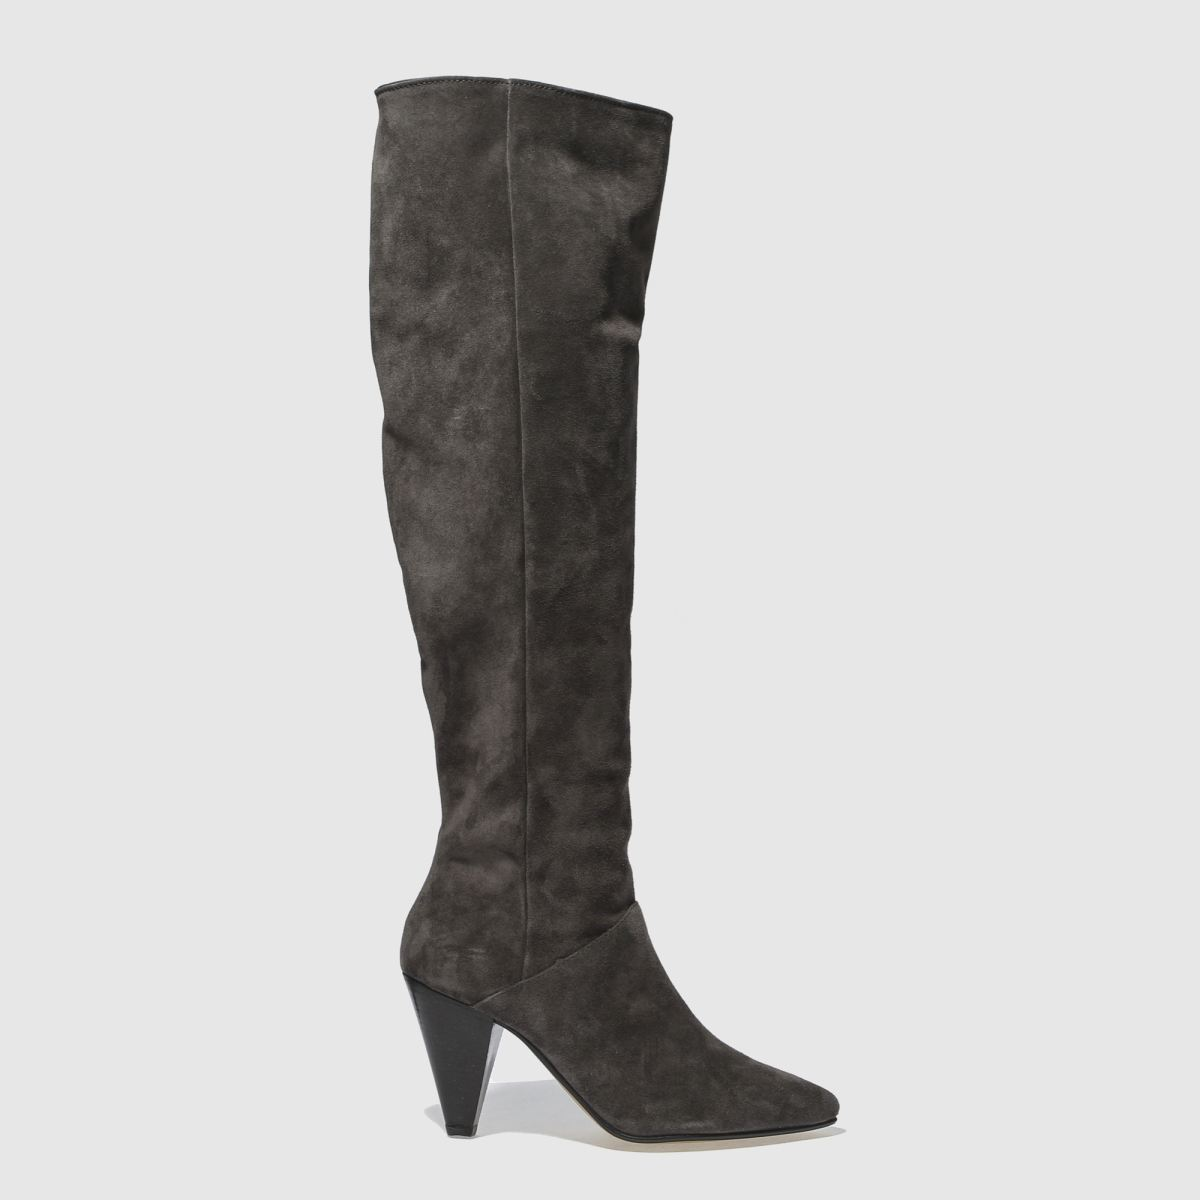 Schuh Grey Epic Boots